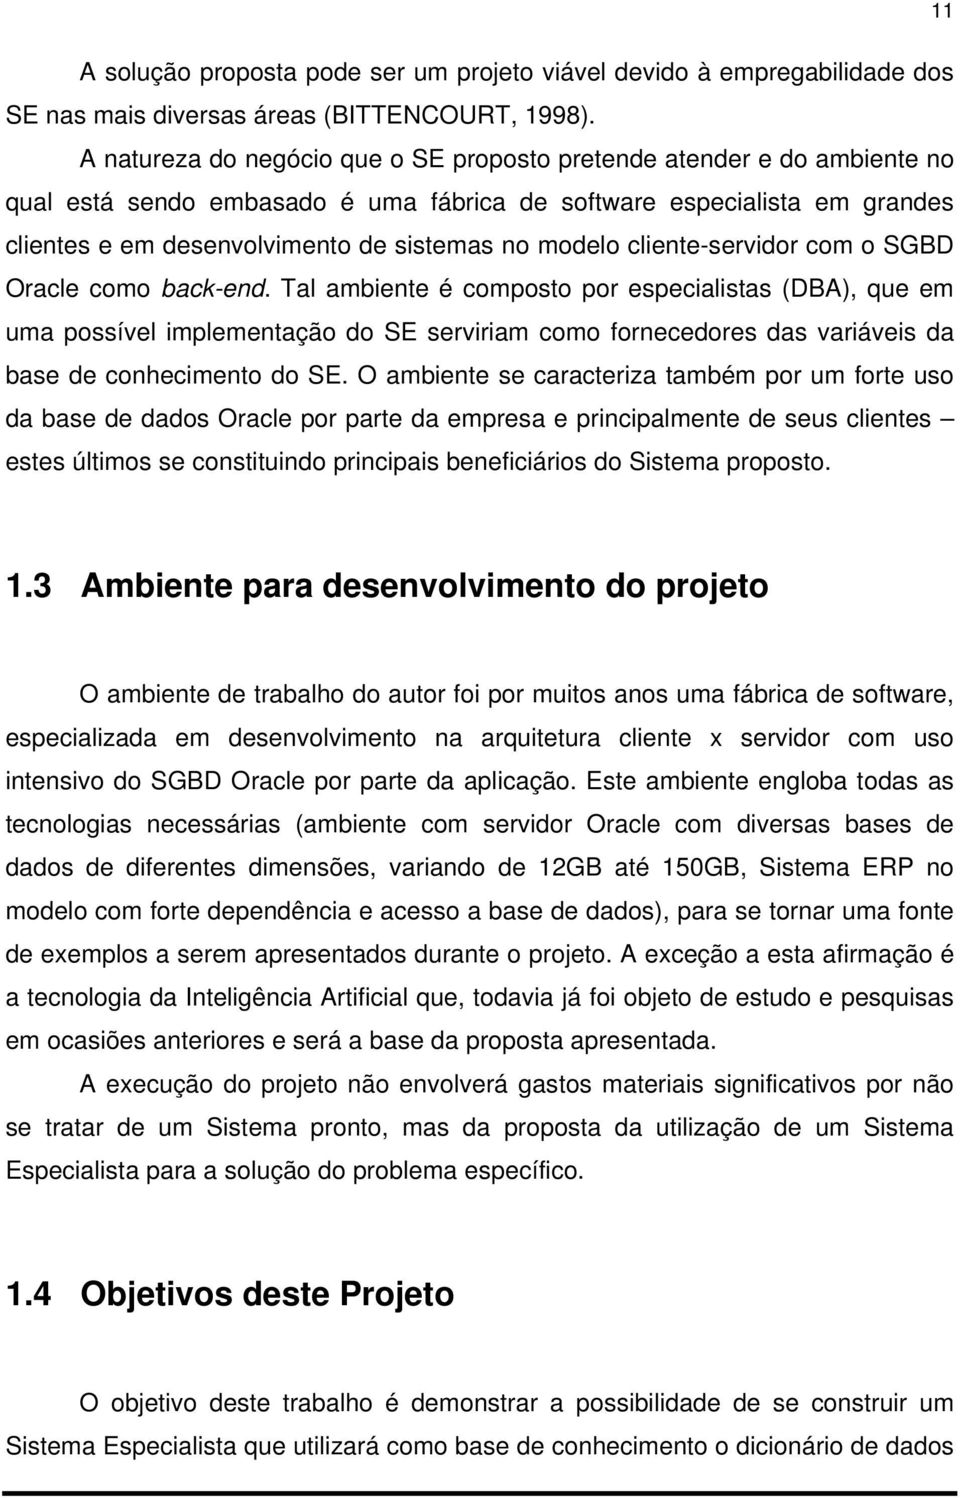 modelo cliente-servidor com o SGBD Oracle como back-end.